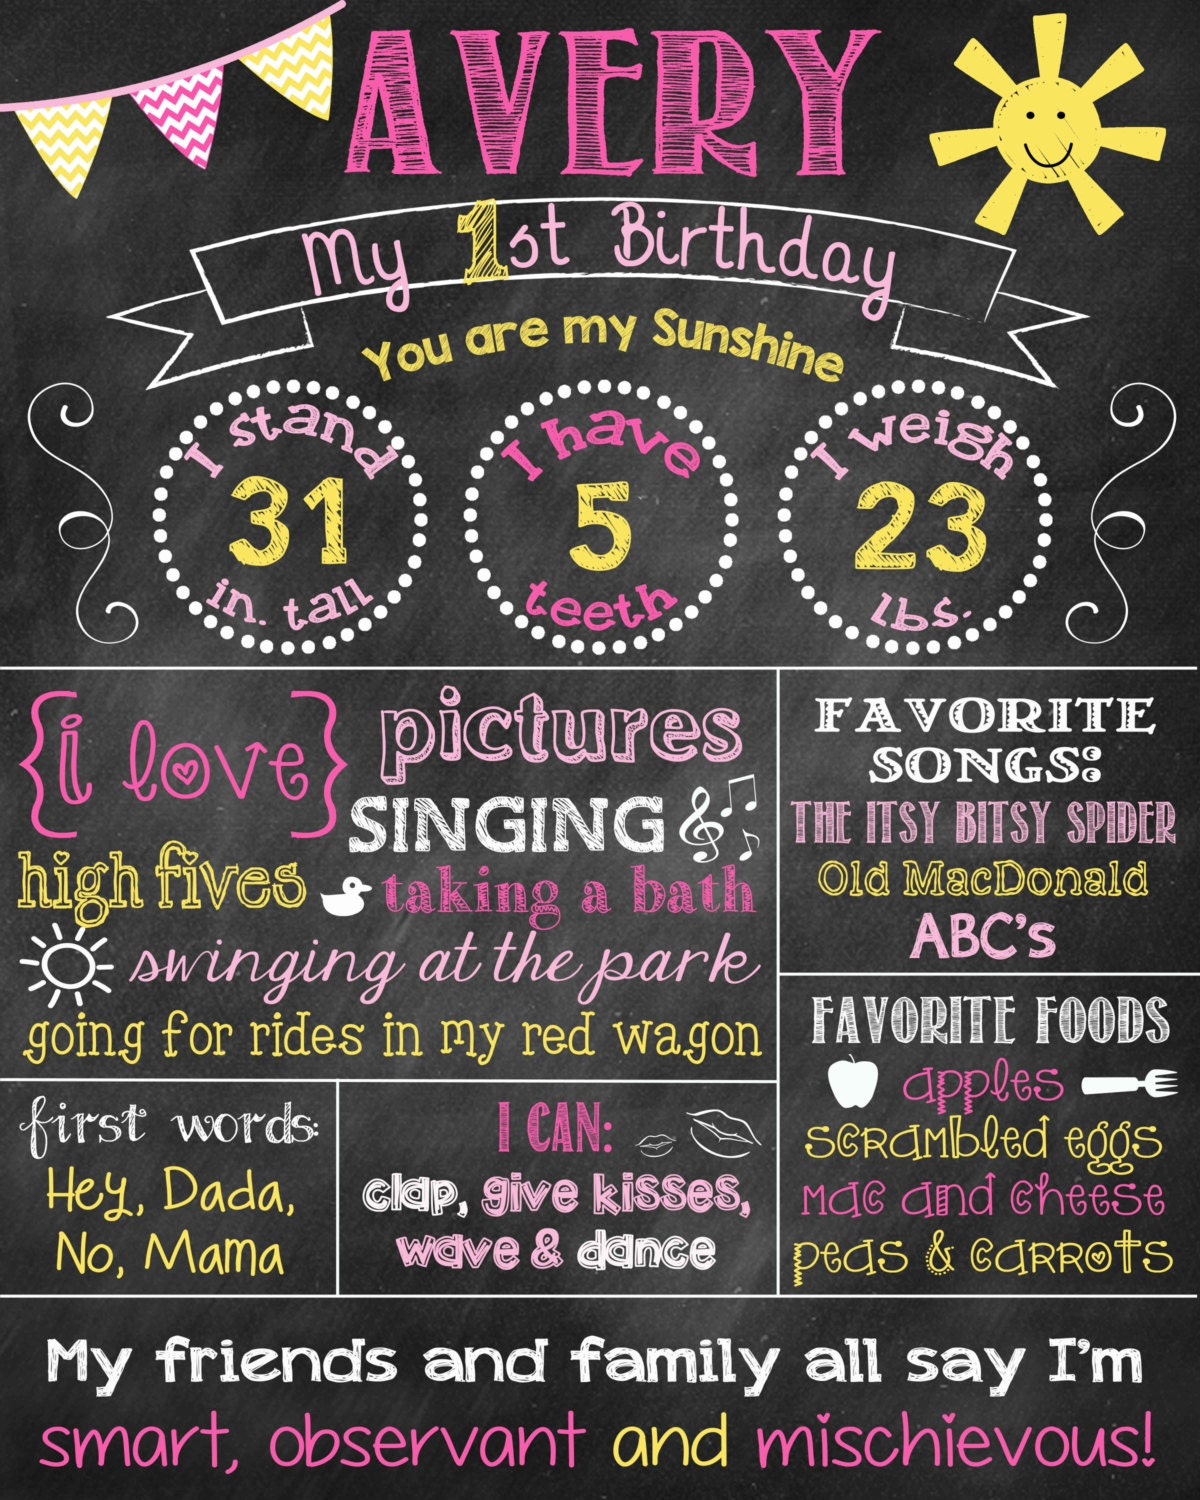 Sunshine First Birthday Chalkboard First Birthday Poster You. Free Printable Yard Sale Signs. Pocket Calendar Template 2016. Us Passport Photo Template. Credit Repair Website Template. Easy Admin Support Cover Letter. Free Envelope Printing Template. Truck Wrap Design Template. Yard Sale Pics